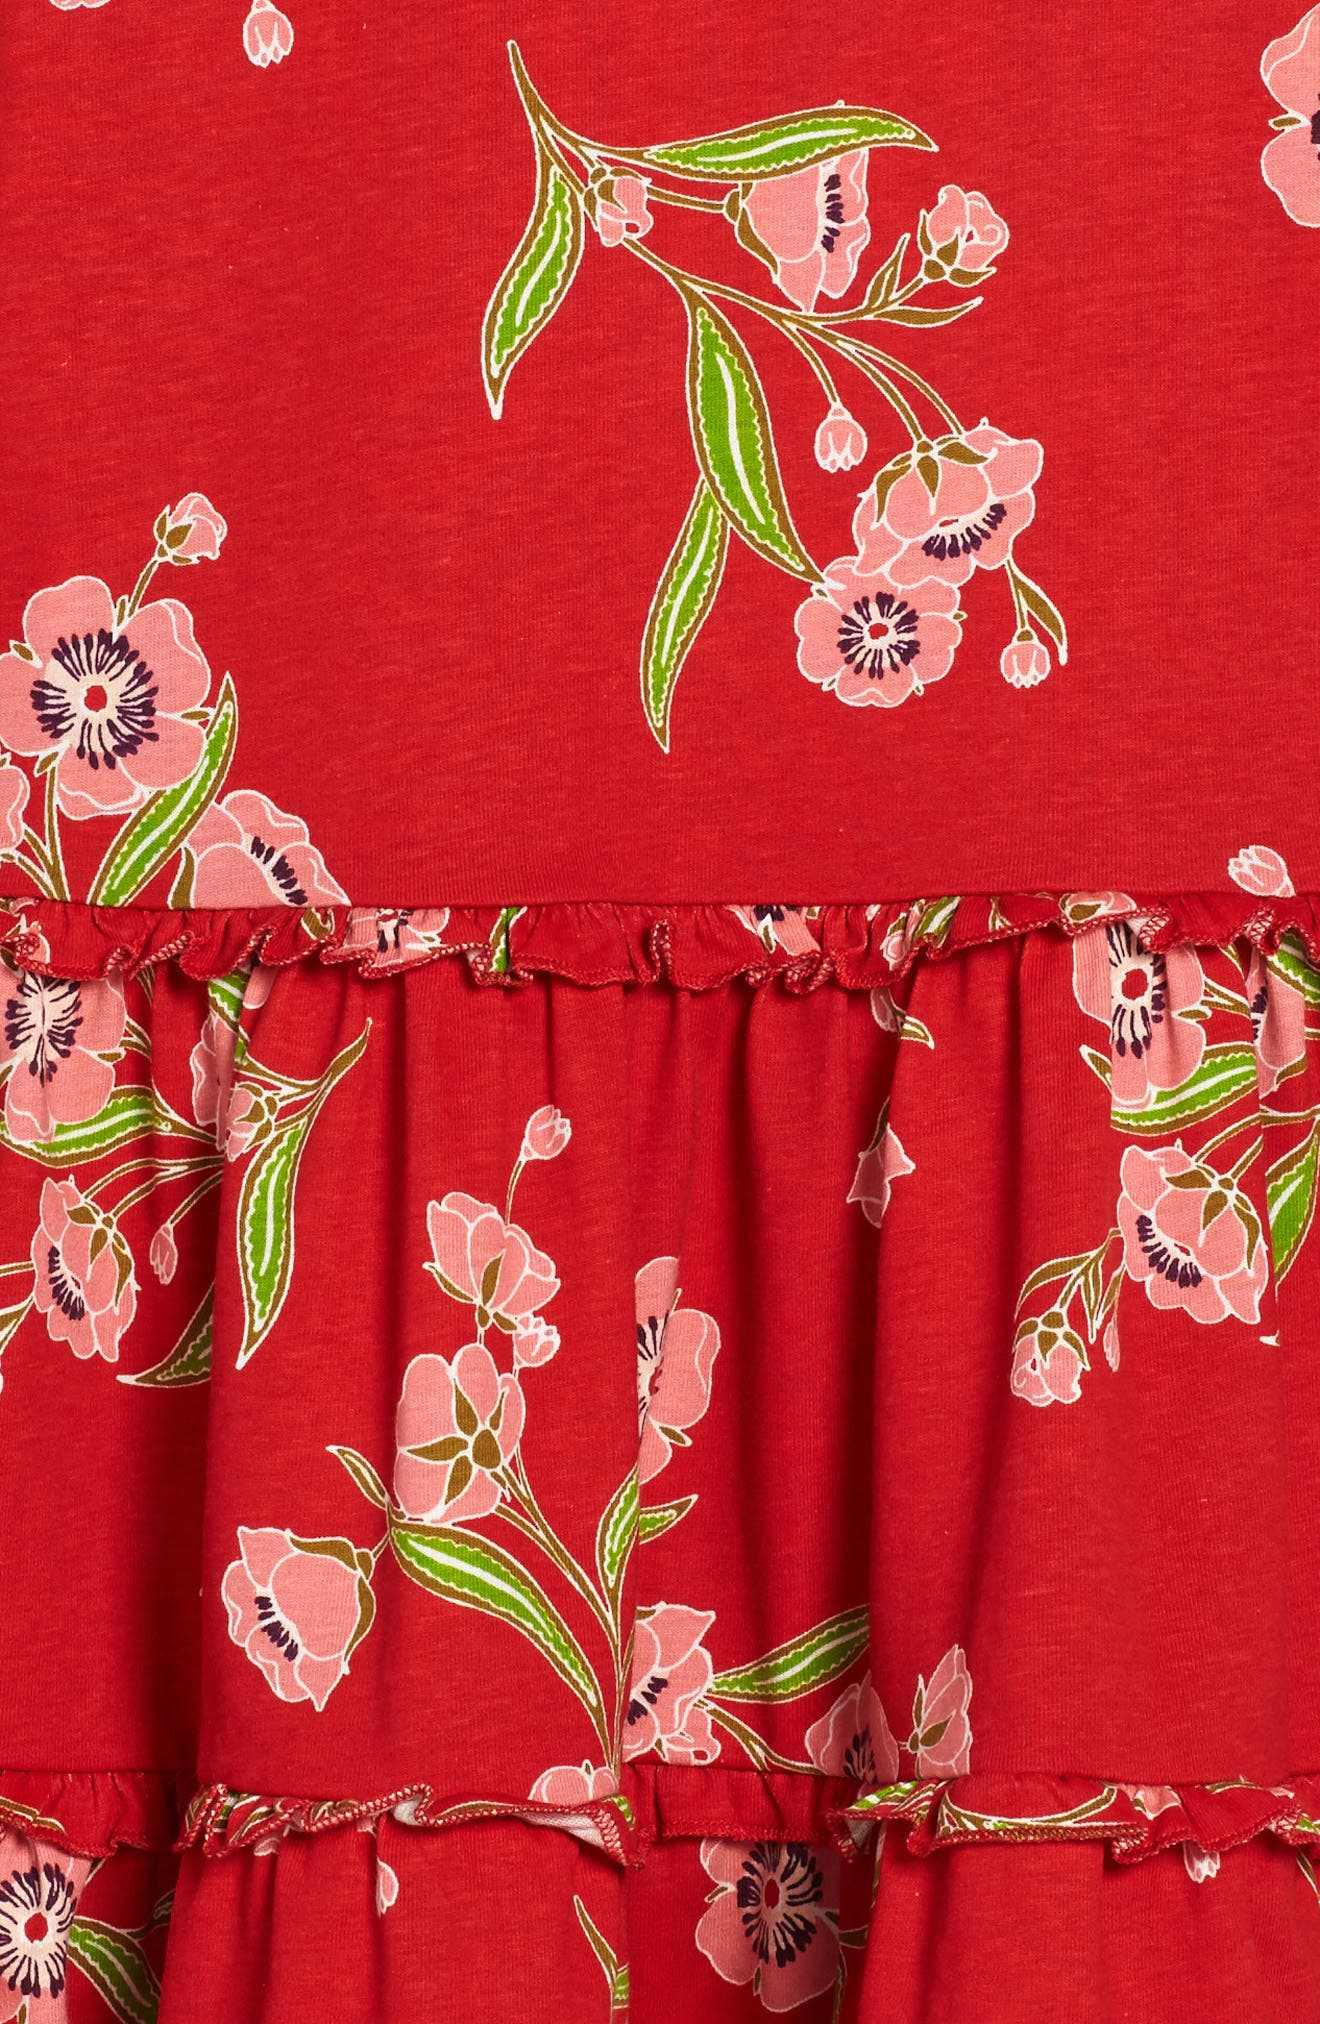 Rowan Floral Print Tiered Dress,                             Alternate thumbnail 3, color,                             Red Lantern